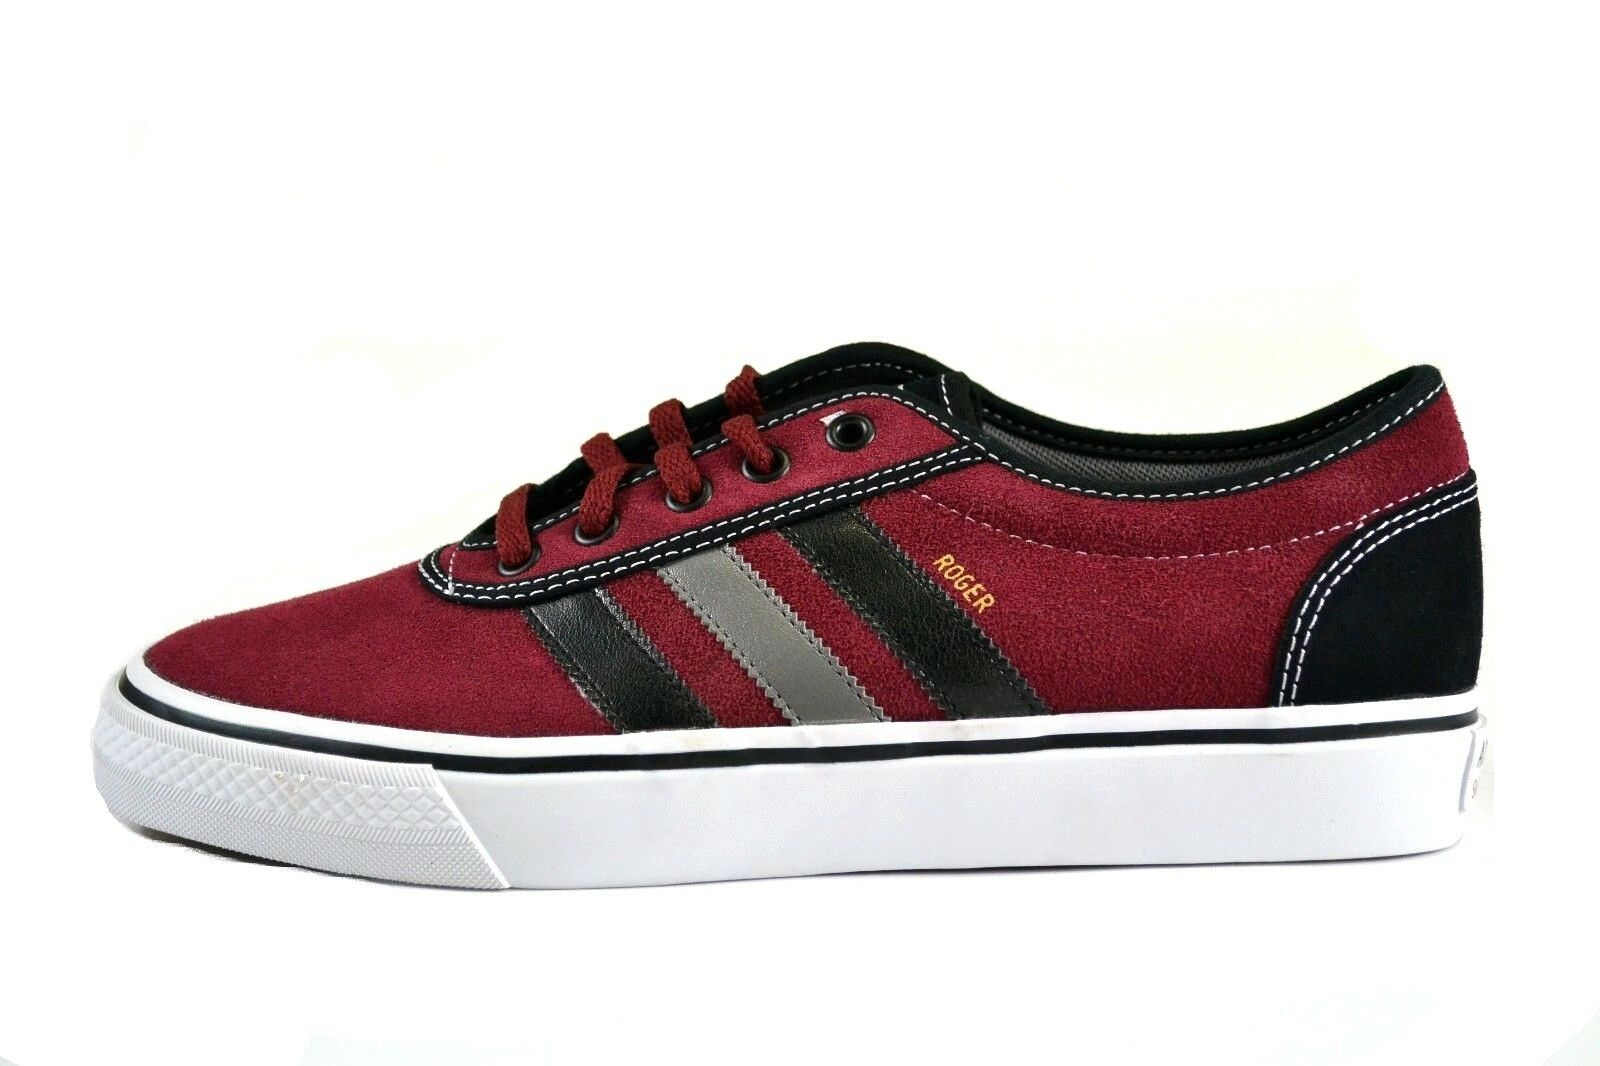 Adidas ADI EASE ROGER Red Black Gray White Suede Skateboarding Price reduction Men's Shoes